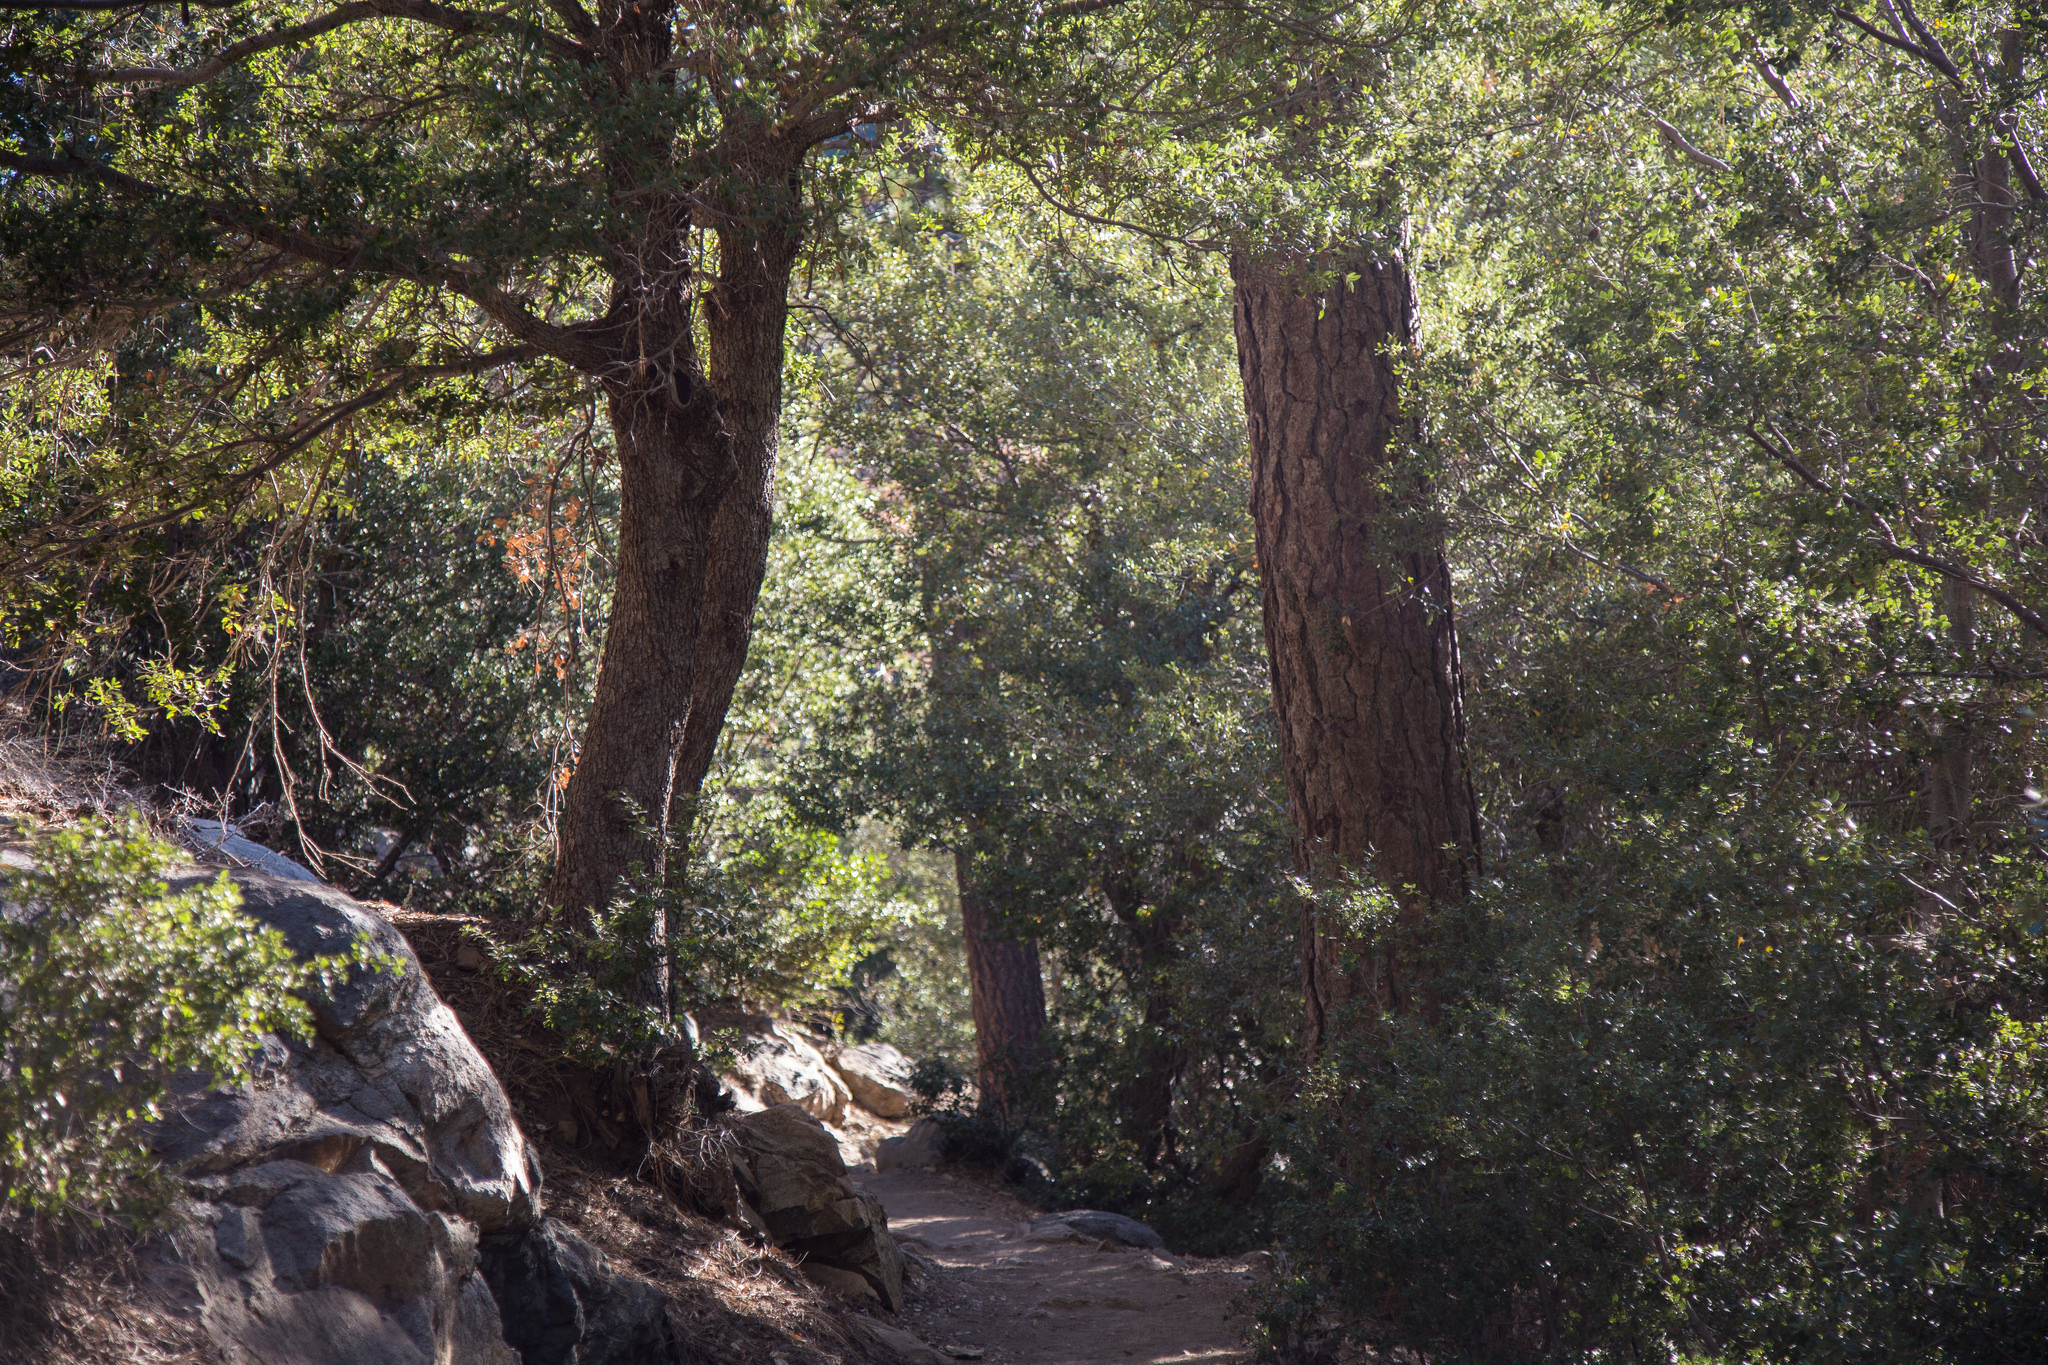 A beautiful canopy of shade along the journey. I saw two California Sister butterflies flying under the oaks and up and down the canyon.